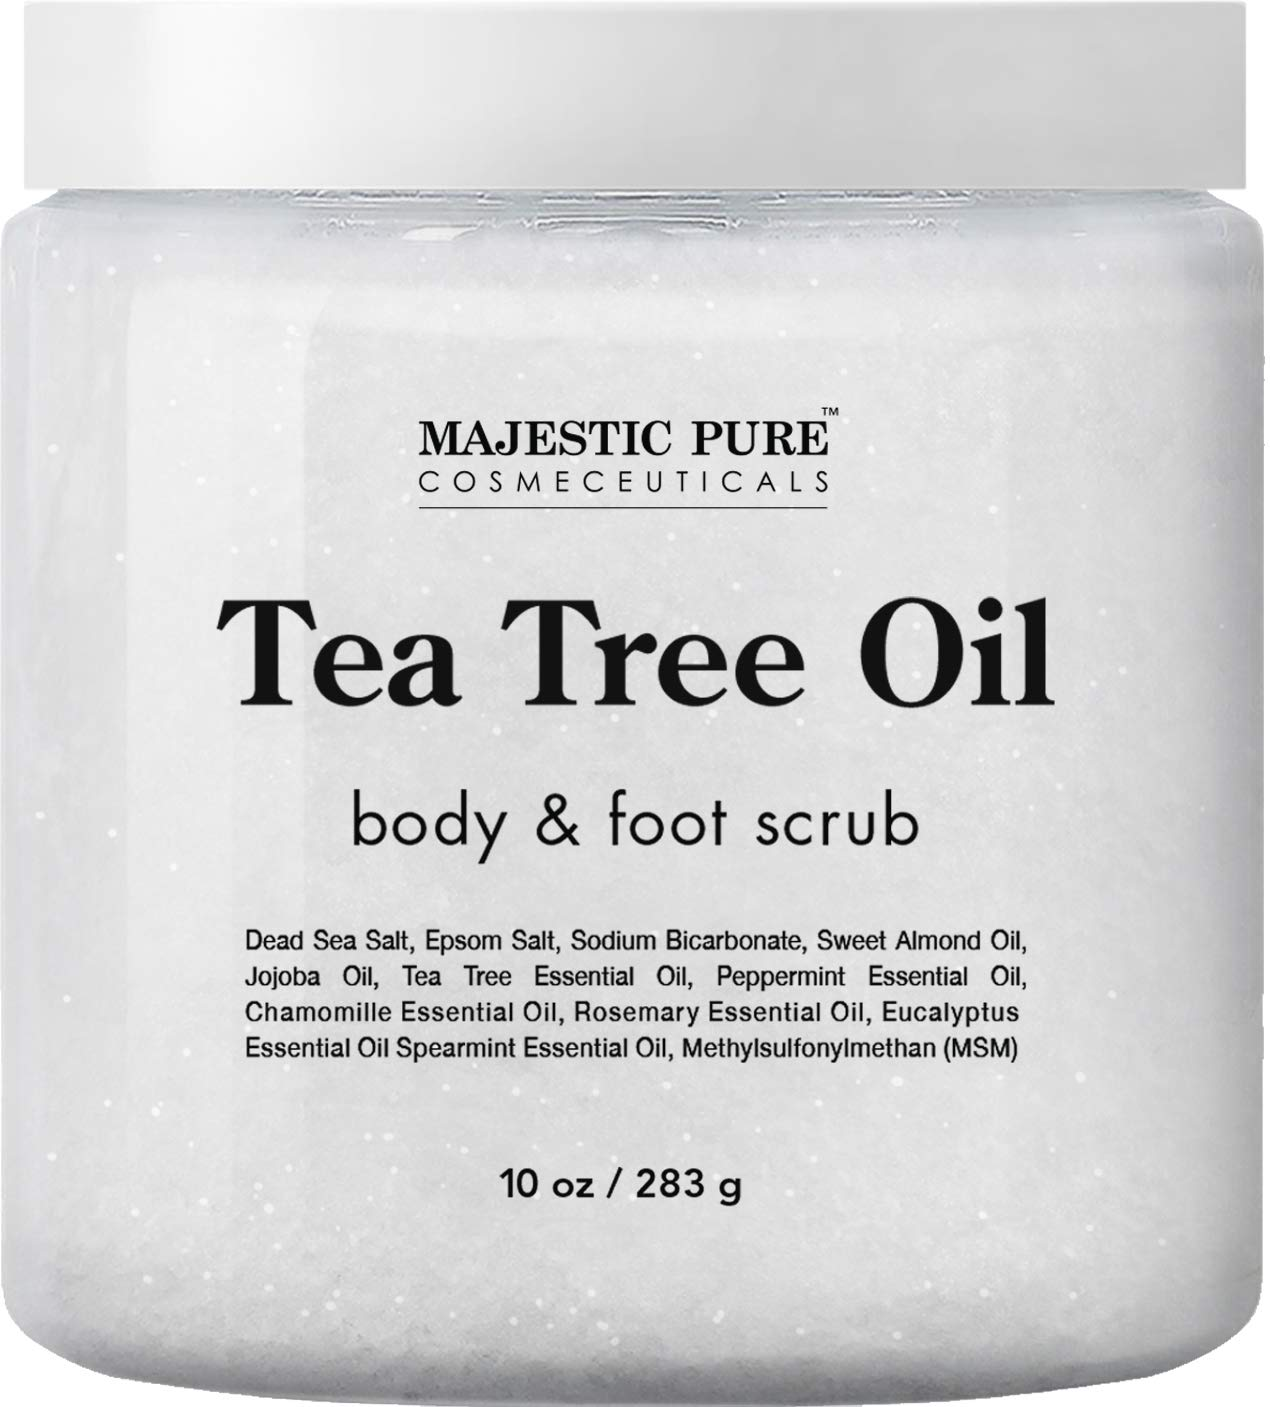 MAJESTIC PURE Tea Tree Body and Foot Scrub - Strong Shield against Fungus - Best Exfoliating Cleanser for Skin - Natural Help Against Acne and Callus - Promotes Healthy Foot - 12 oz by Majestic Pure